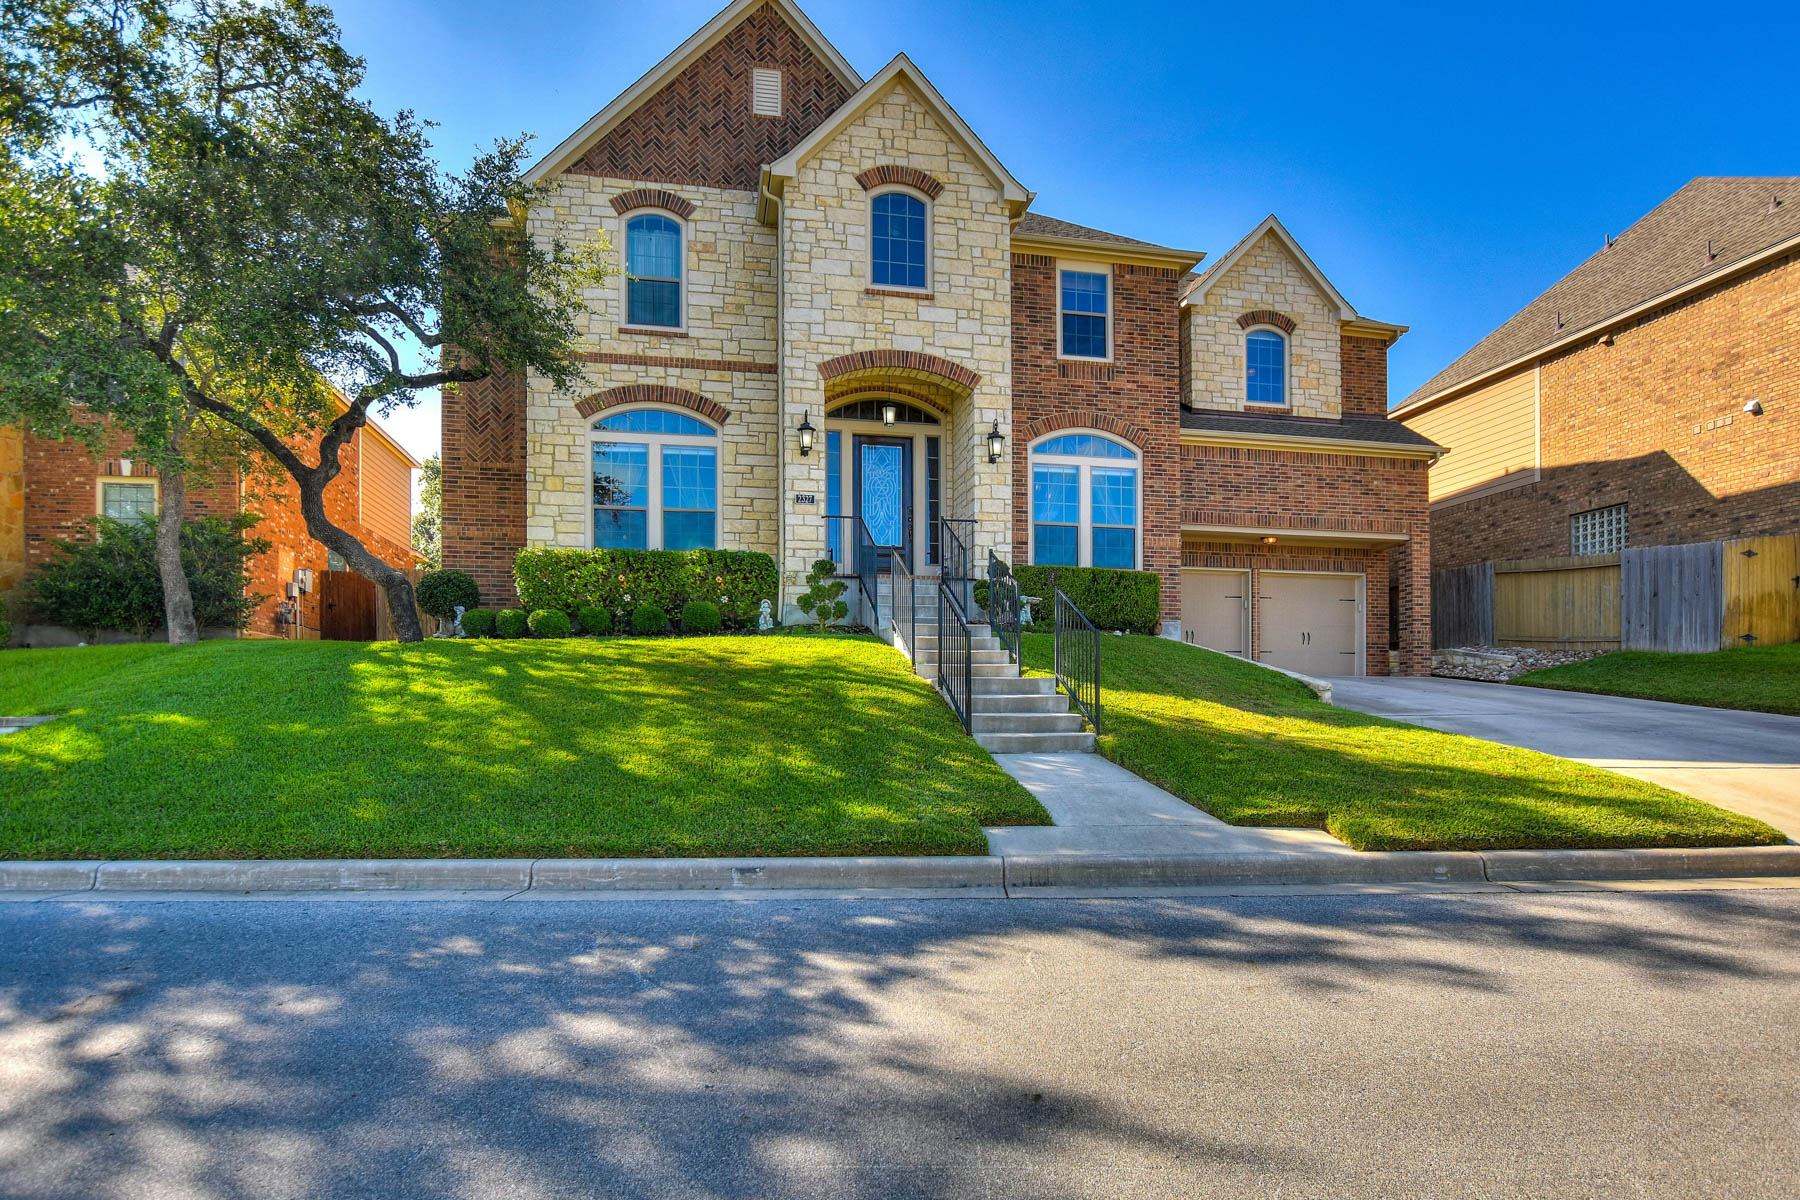 Casa Unifamiliar por un Venta en Amazing Home Loaded with Upgrades in New Braunfels 2327 Oak Run Pkwy New Braunfels, Texas 78132 Estados Unidos